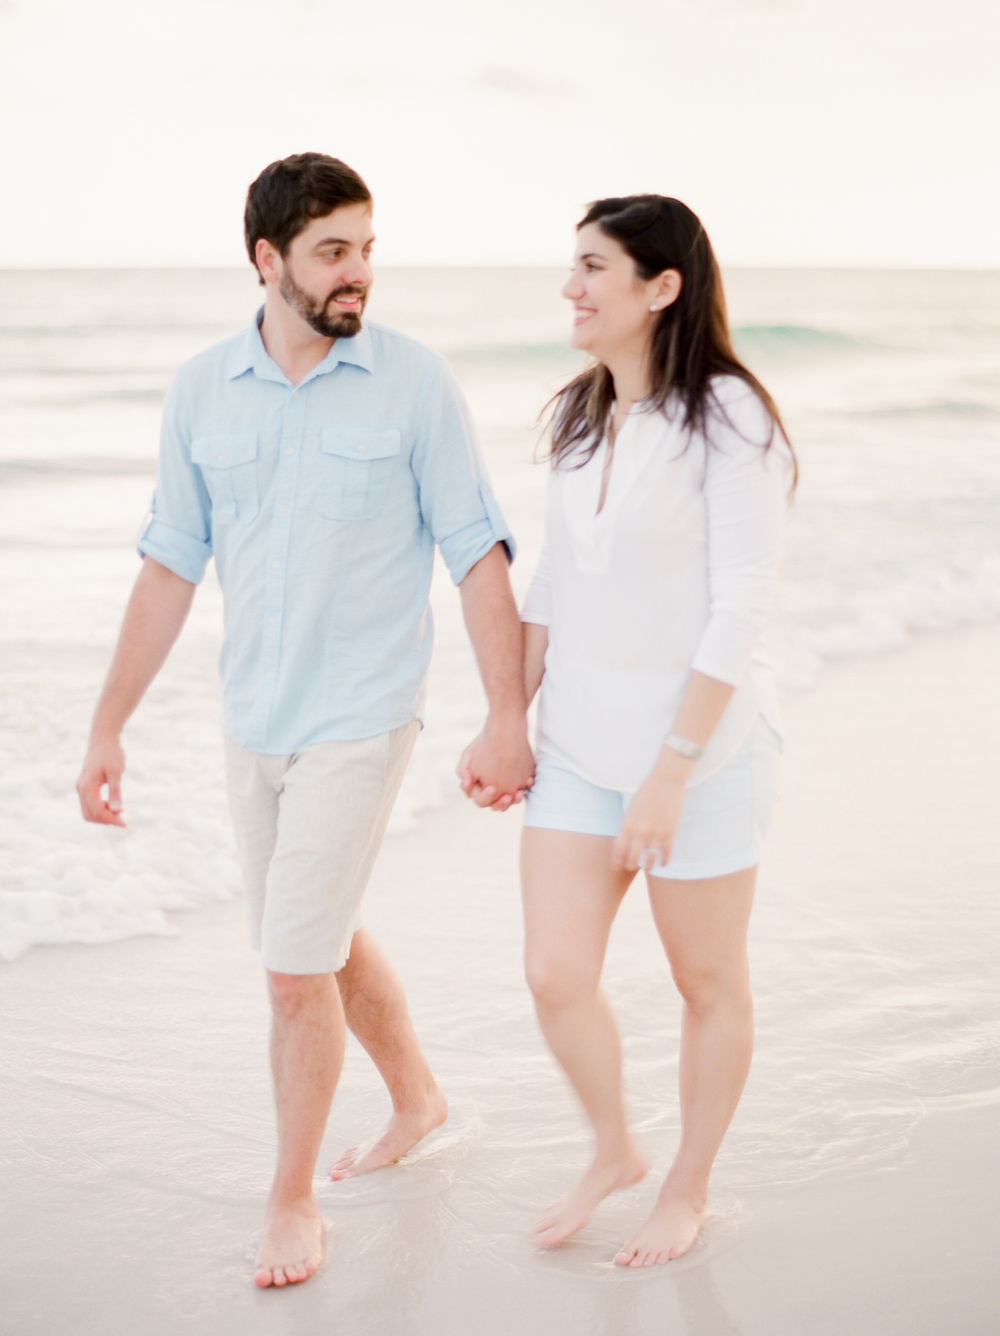 Neutral colored outfits for beach engagement pictures | Kaylie B. Poplin Photography | Destin, Florida fine art photographer